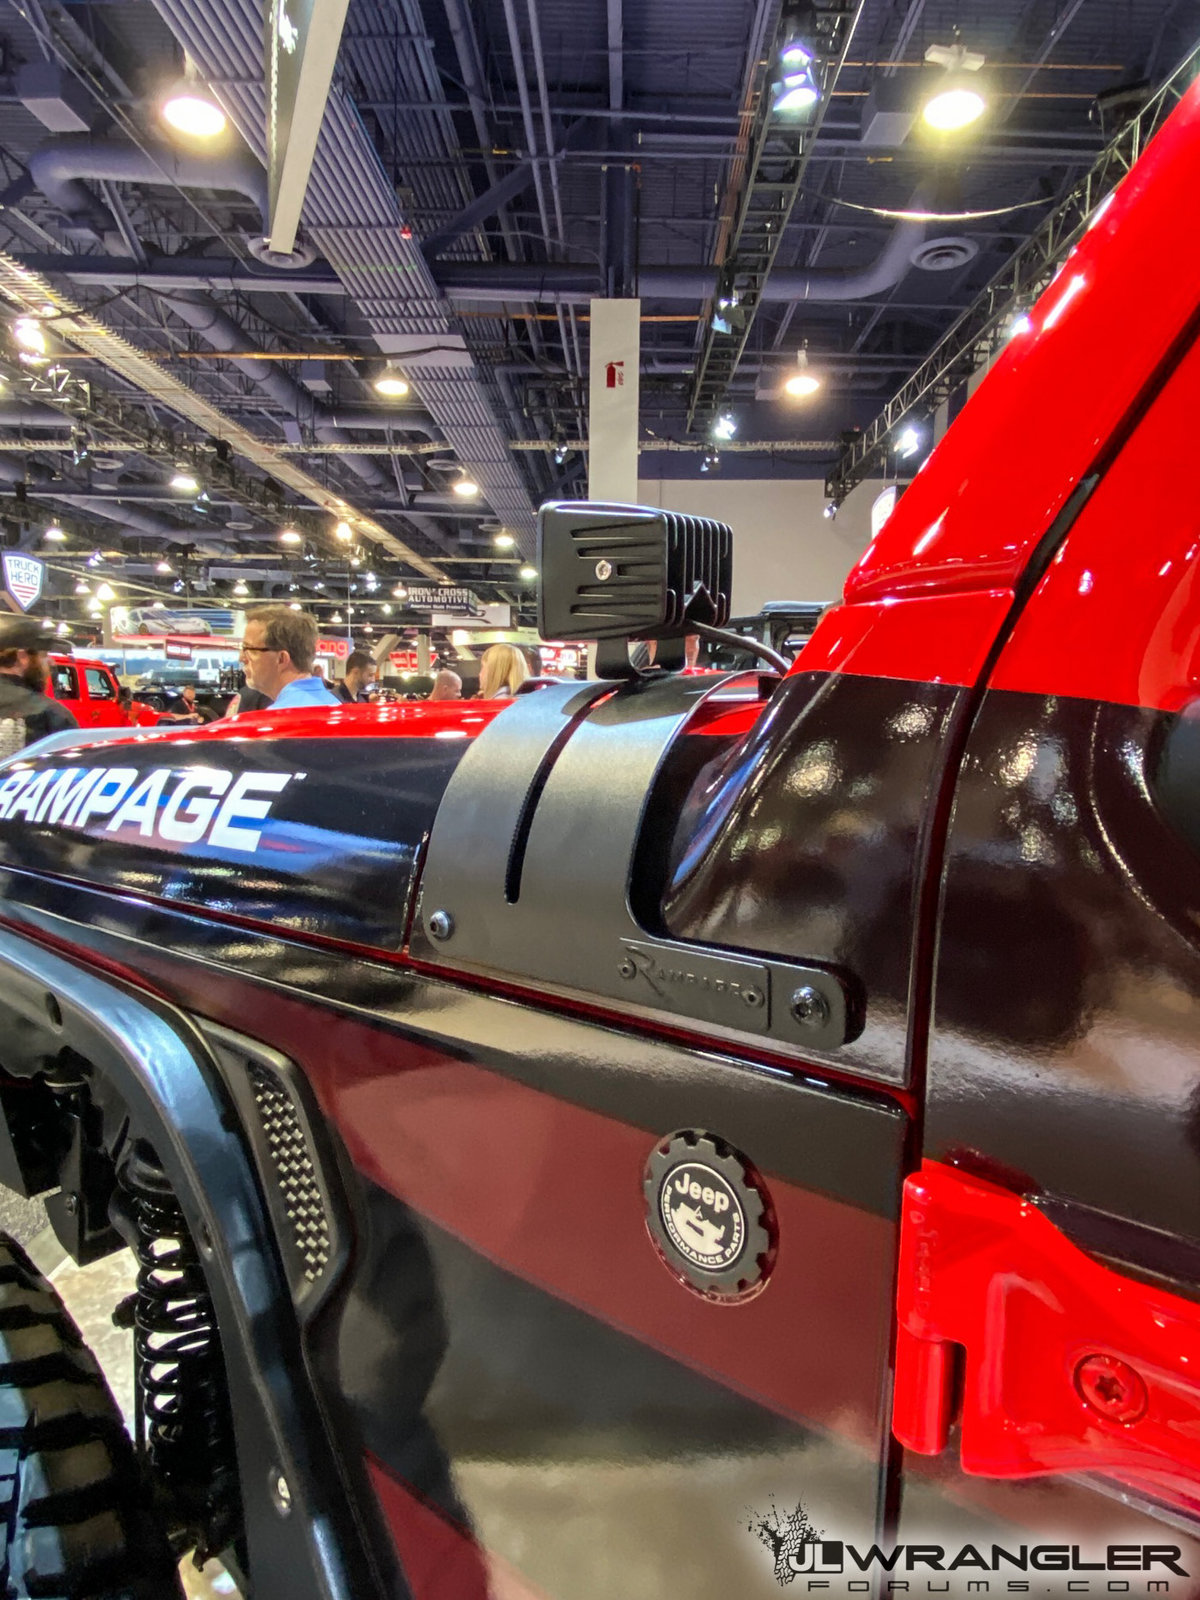 Rampage-JLU-Jeep-Wrangler-SEMA-Build-9.jpg